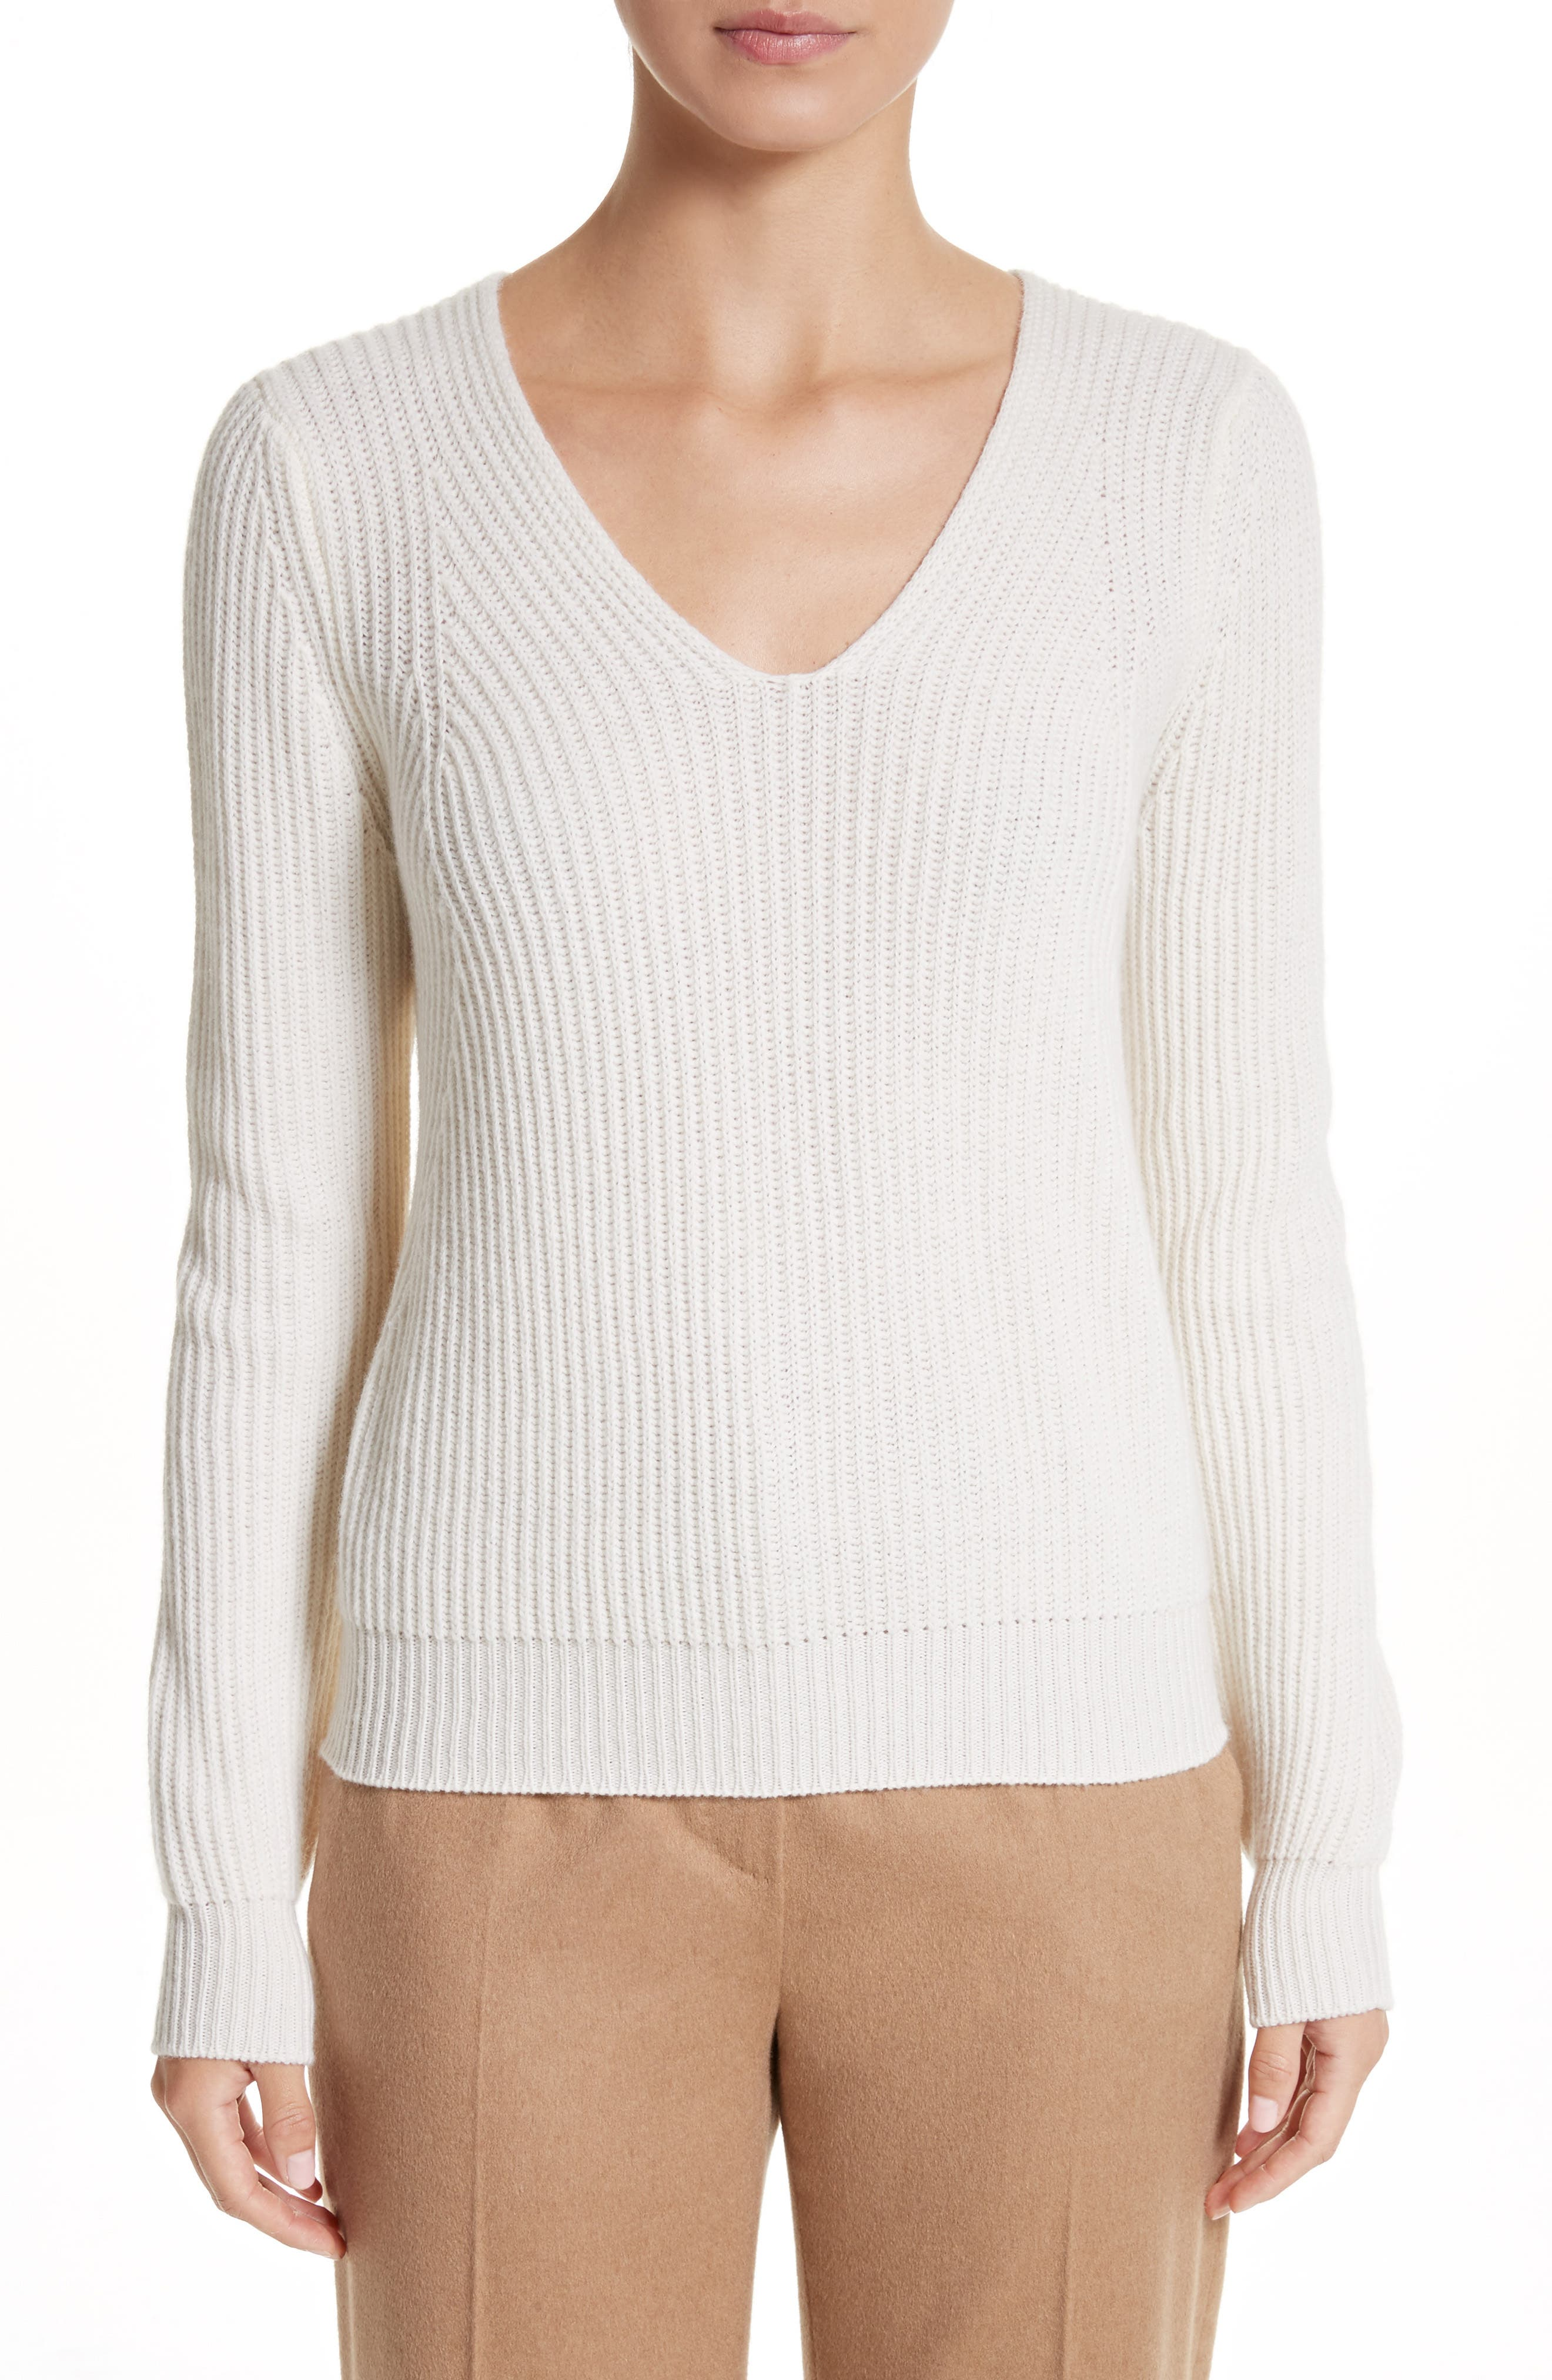 Sax Wool & Cashmere Sweater,                             Main thumbnail 1, color,                             900